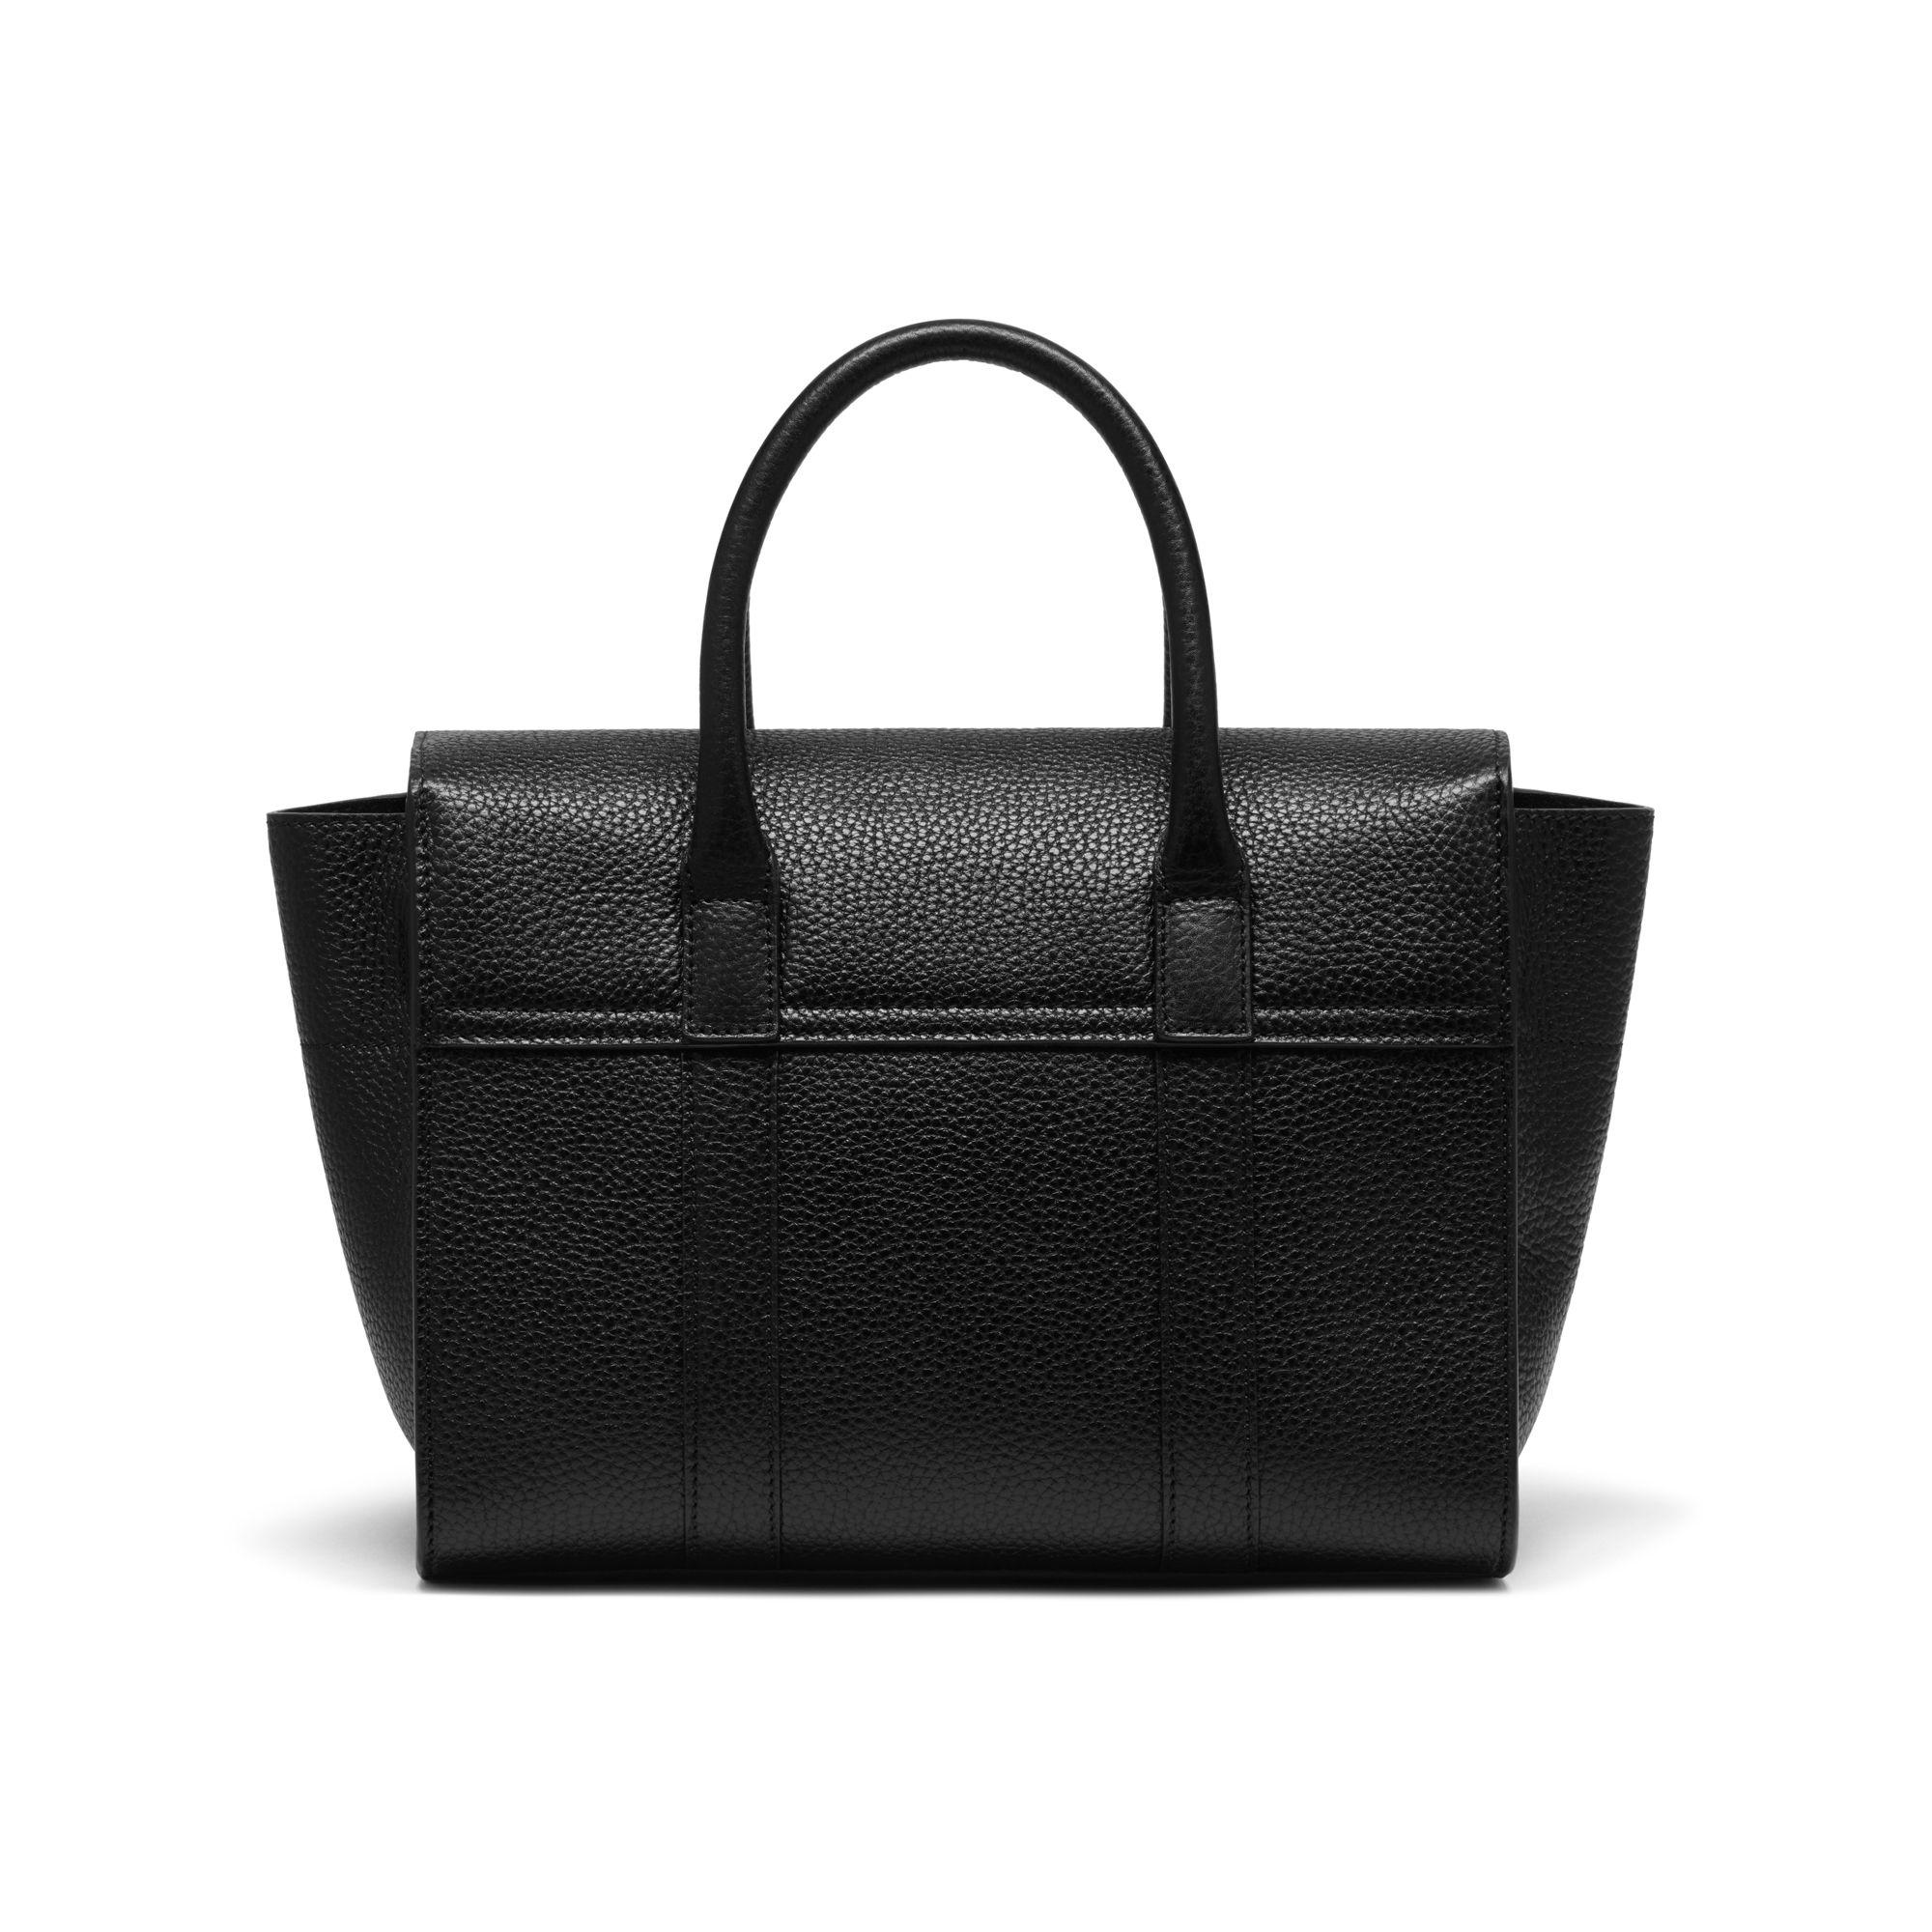 0284cc1d8aa9 ... wholesale mulberry black small bayswater satchel bag lyst. view  fullscreen aa462 f6501